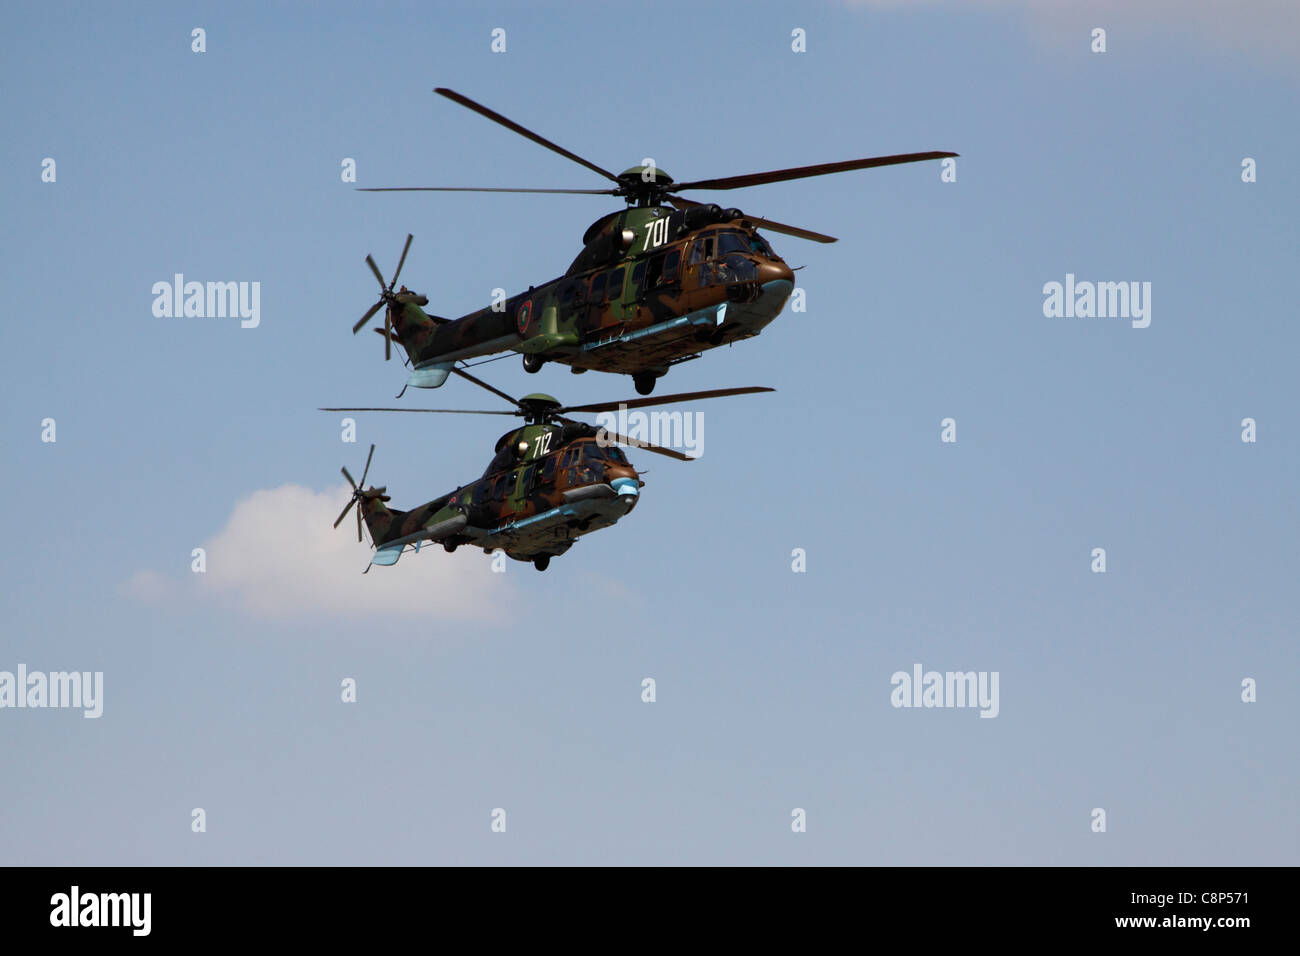 Two Bulgarian Air Force Aerospatiale AS532 Cougar medium utility helicopters in flight, blue sky in background - Stock Image